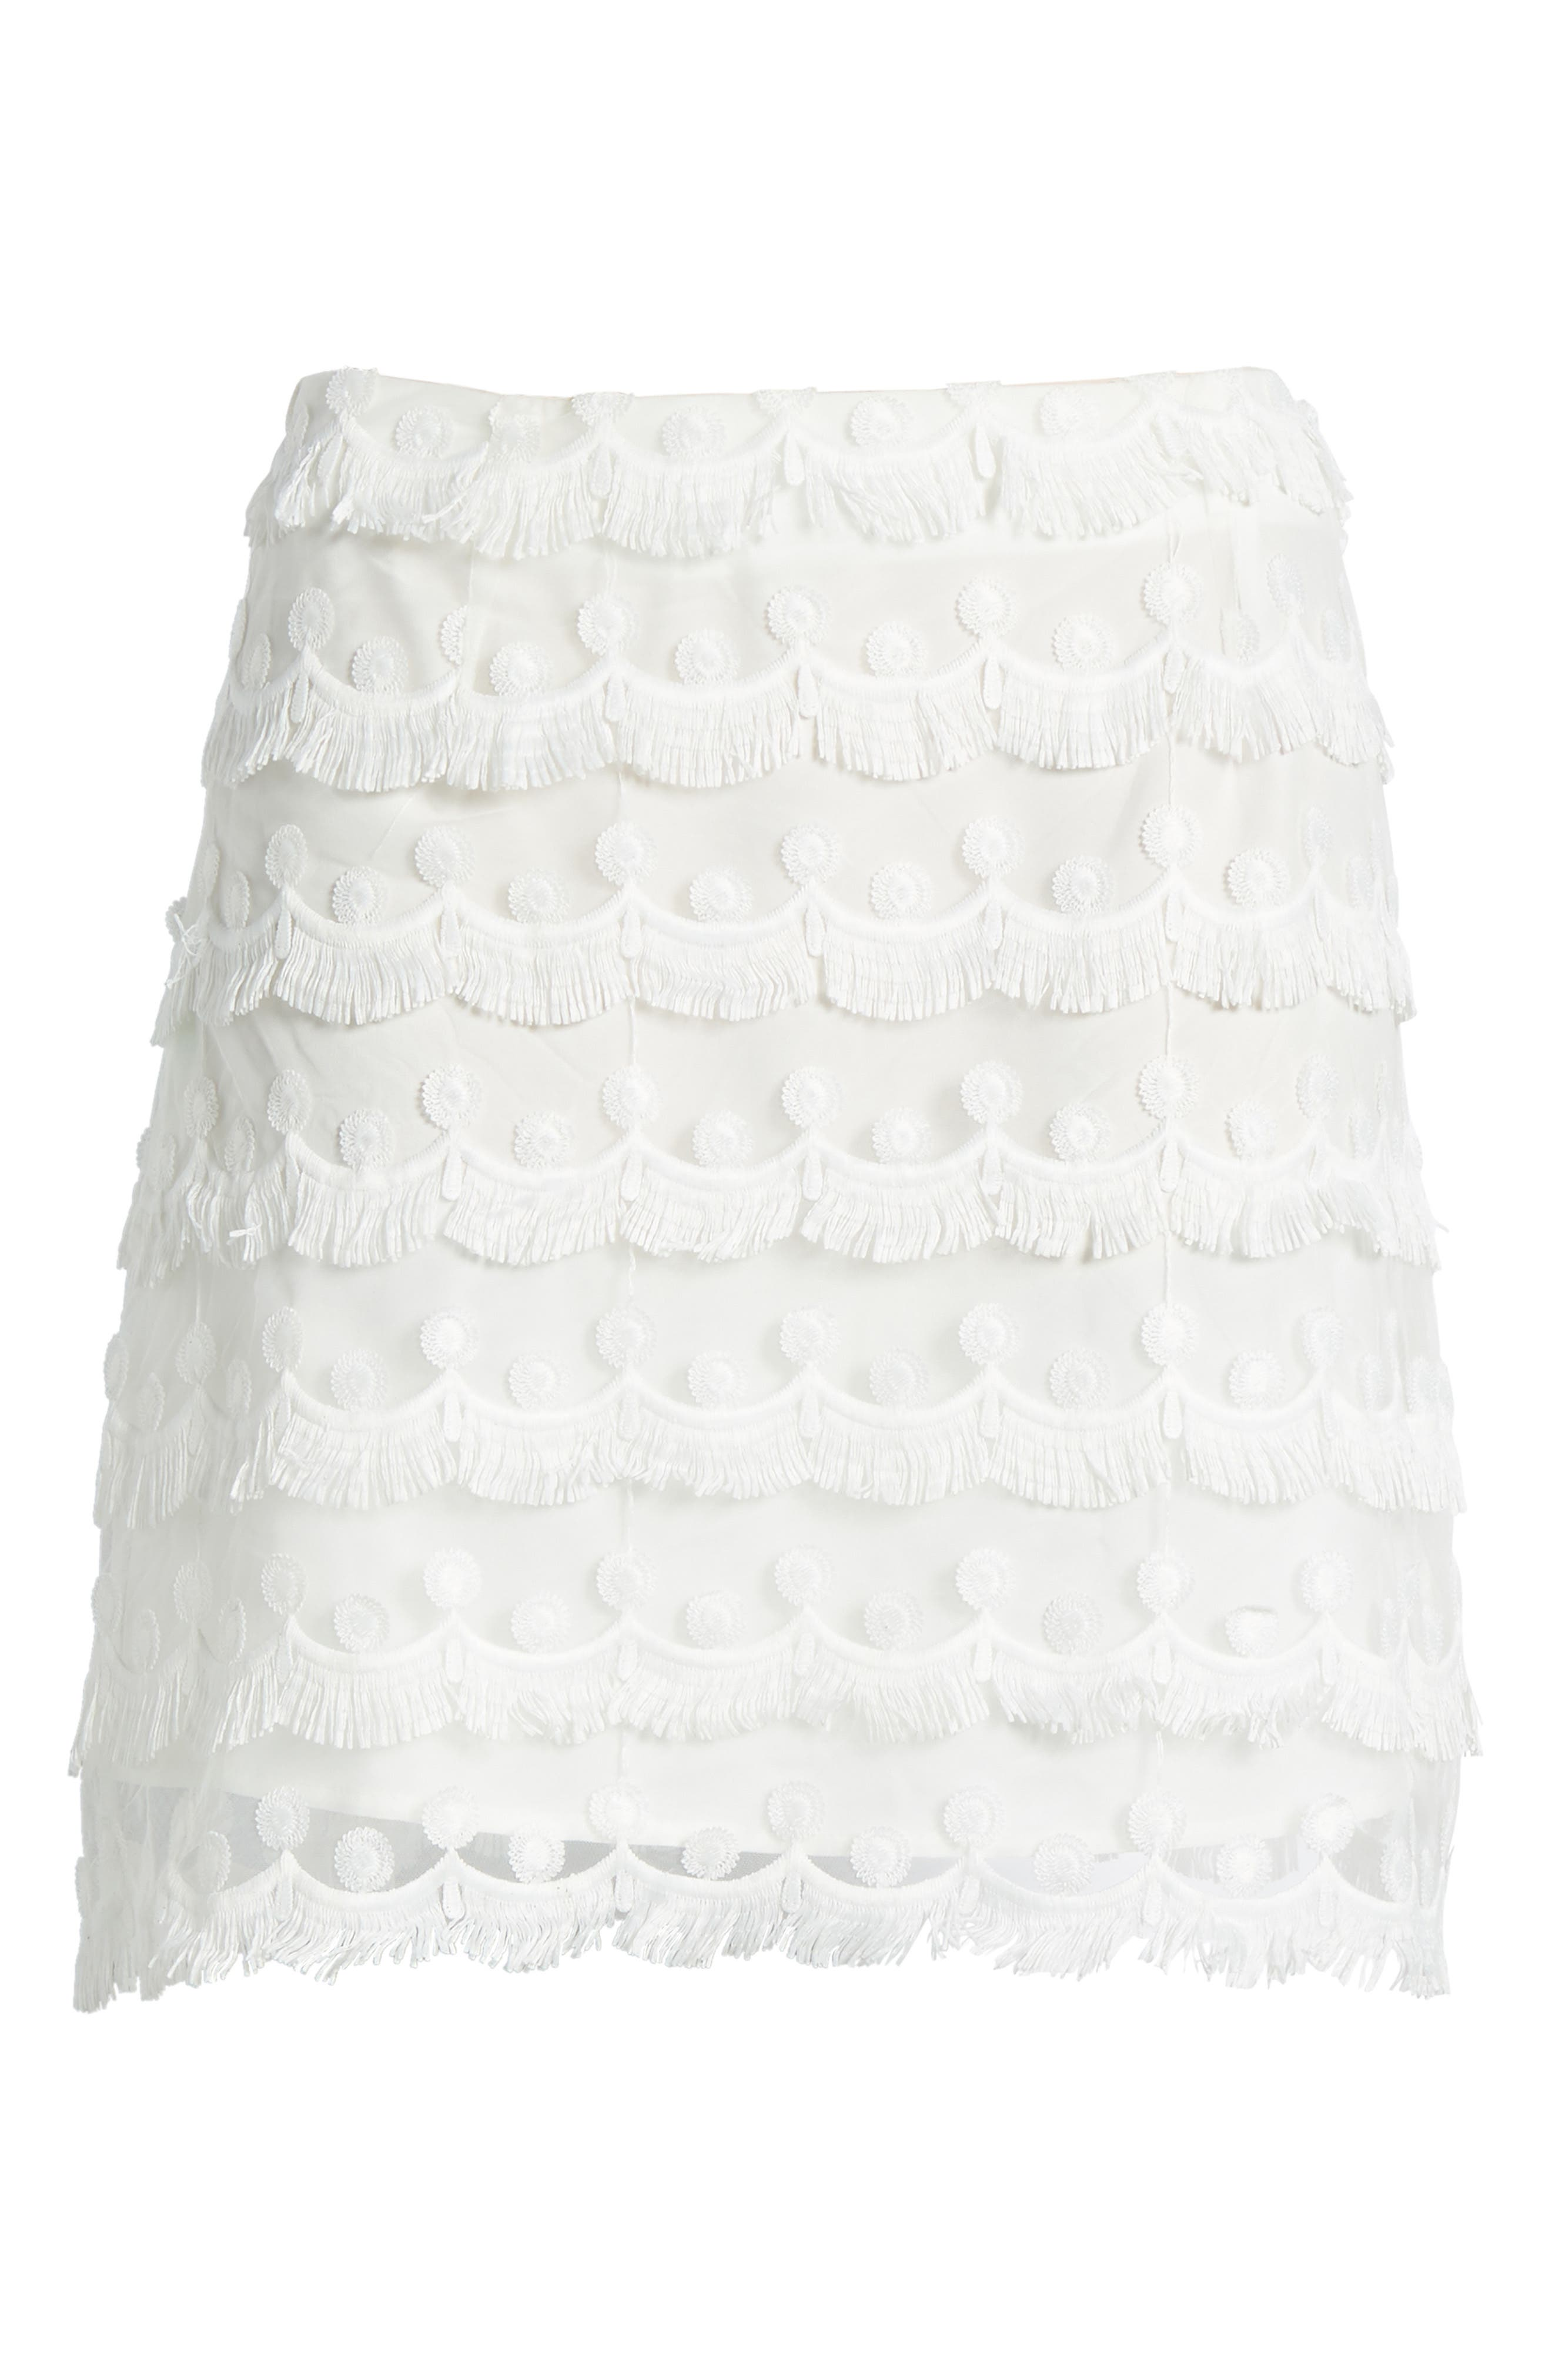 3D Lace Fringed Miniskirt,                             Alternate thumbnail 7, color,                             White